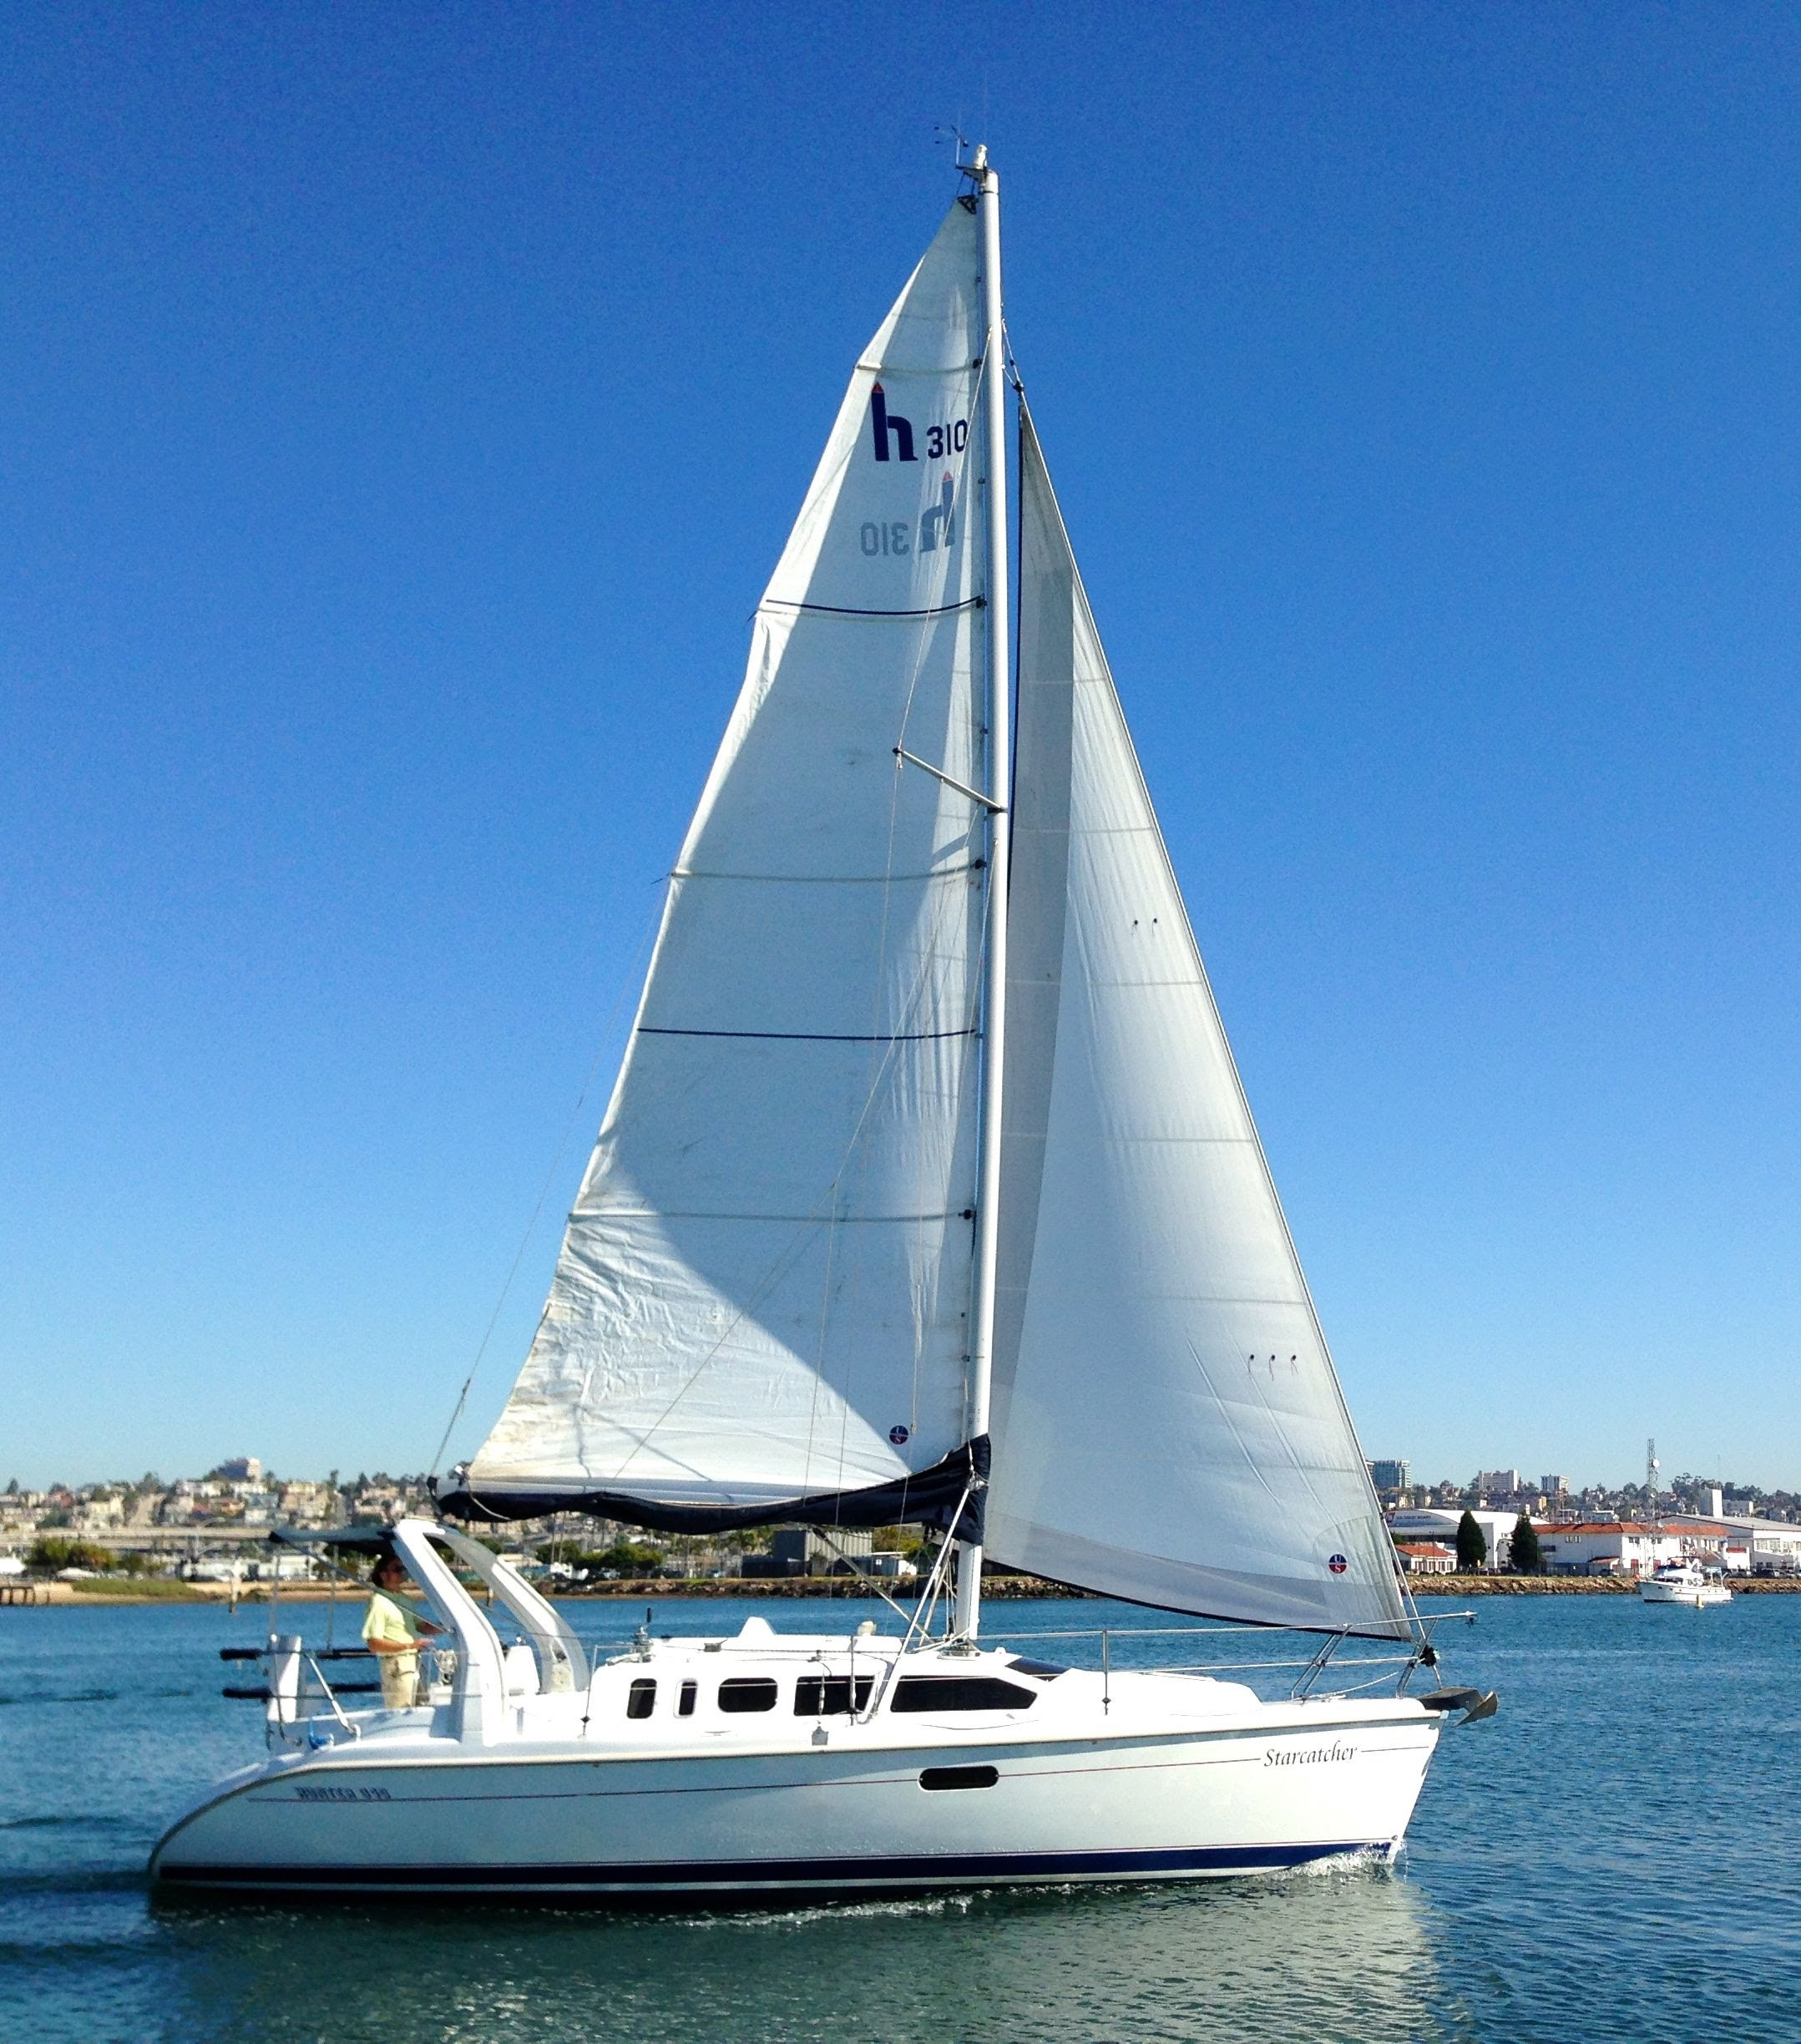 Hunter 310 Sailboat 1999 for sale in San Diego, California By: Ian ...